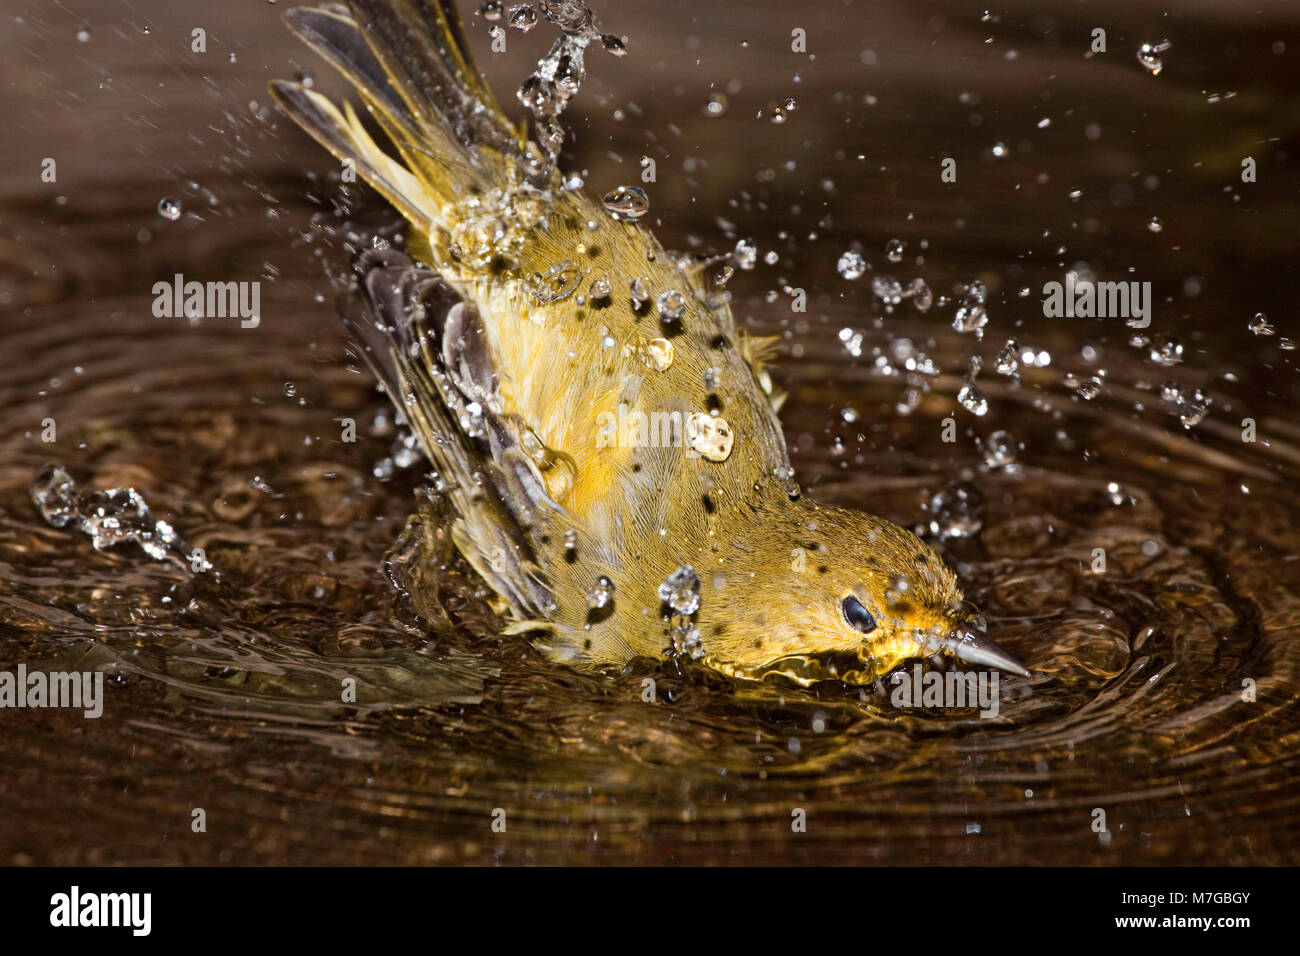 The Galapagos Mangrove Warbler or yellow warbler, Dendroica petechia aureola, is an endemic subspecies.  Water flies - Stock Image